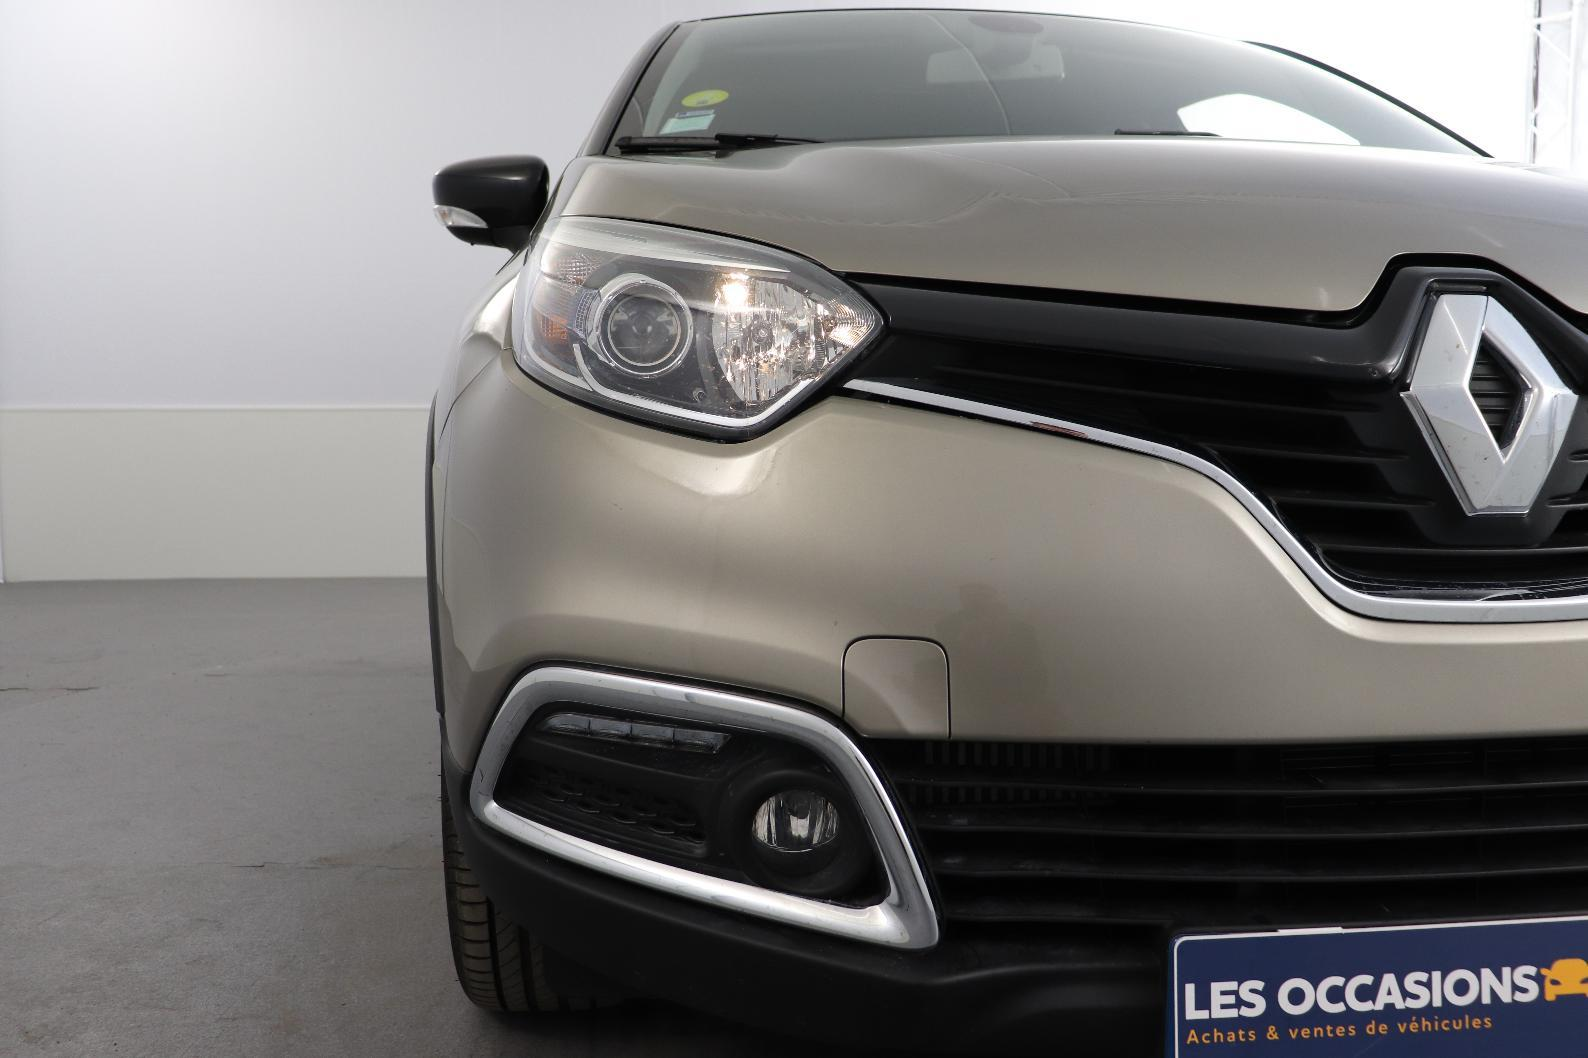 RENAULT CAPTUR dCi 90 Energy ecoé Intens